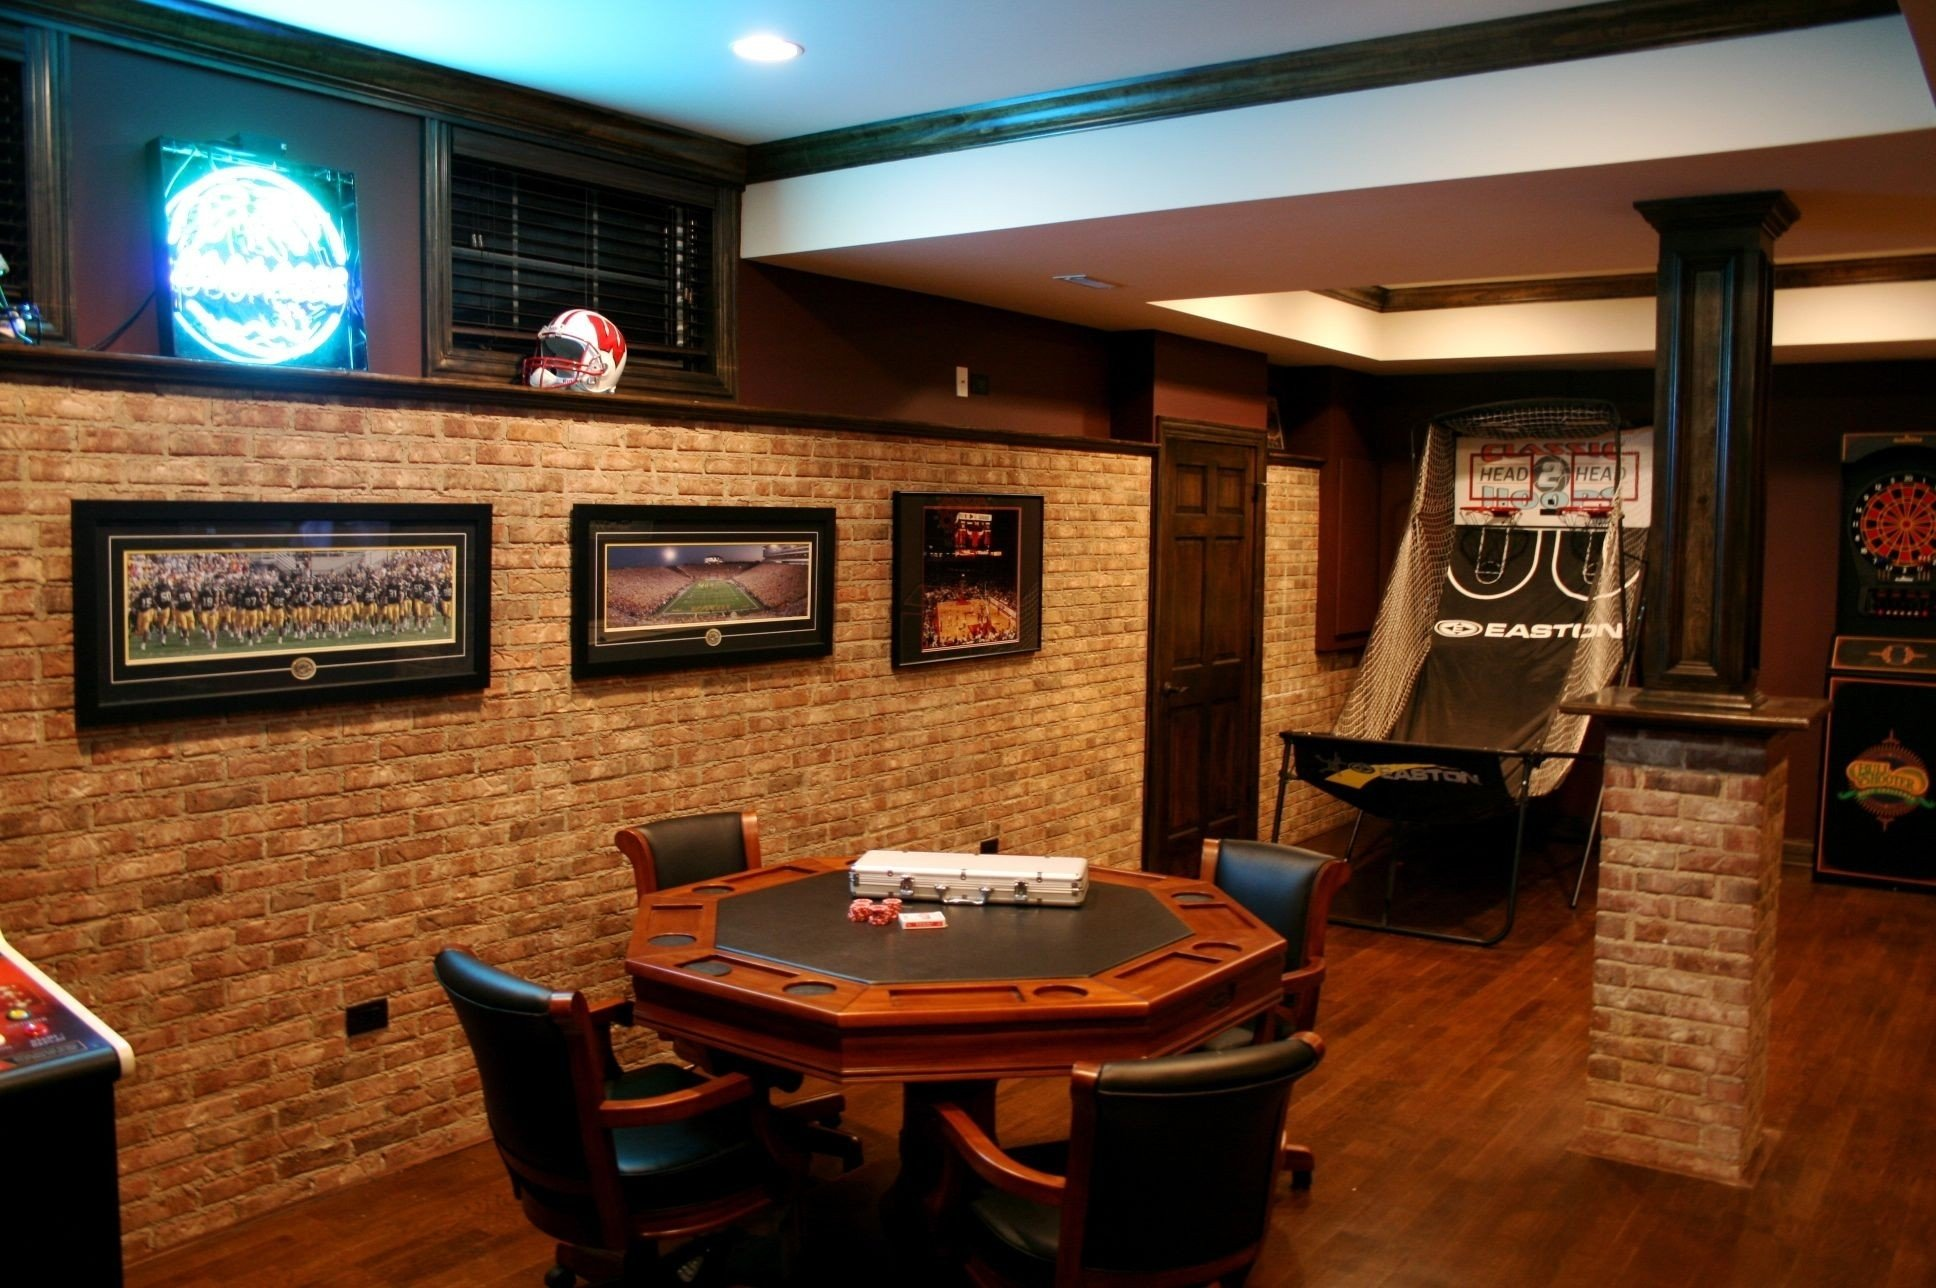 10 Gorgeous Game Room Ideas For Adults impressive basement game room ideas game room pool4 game room 1